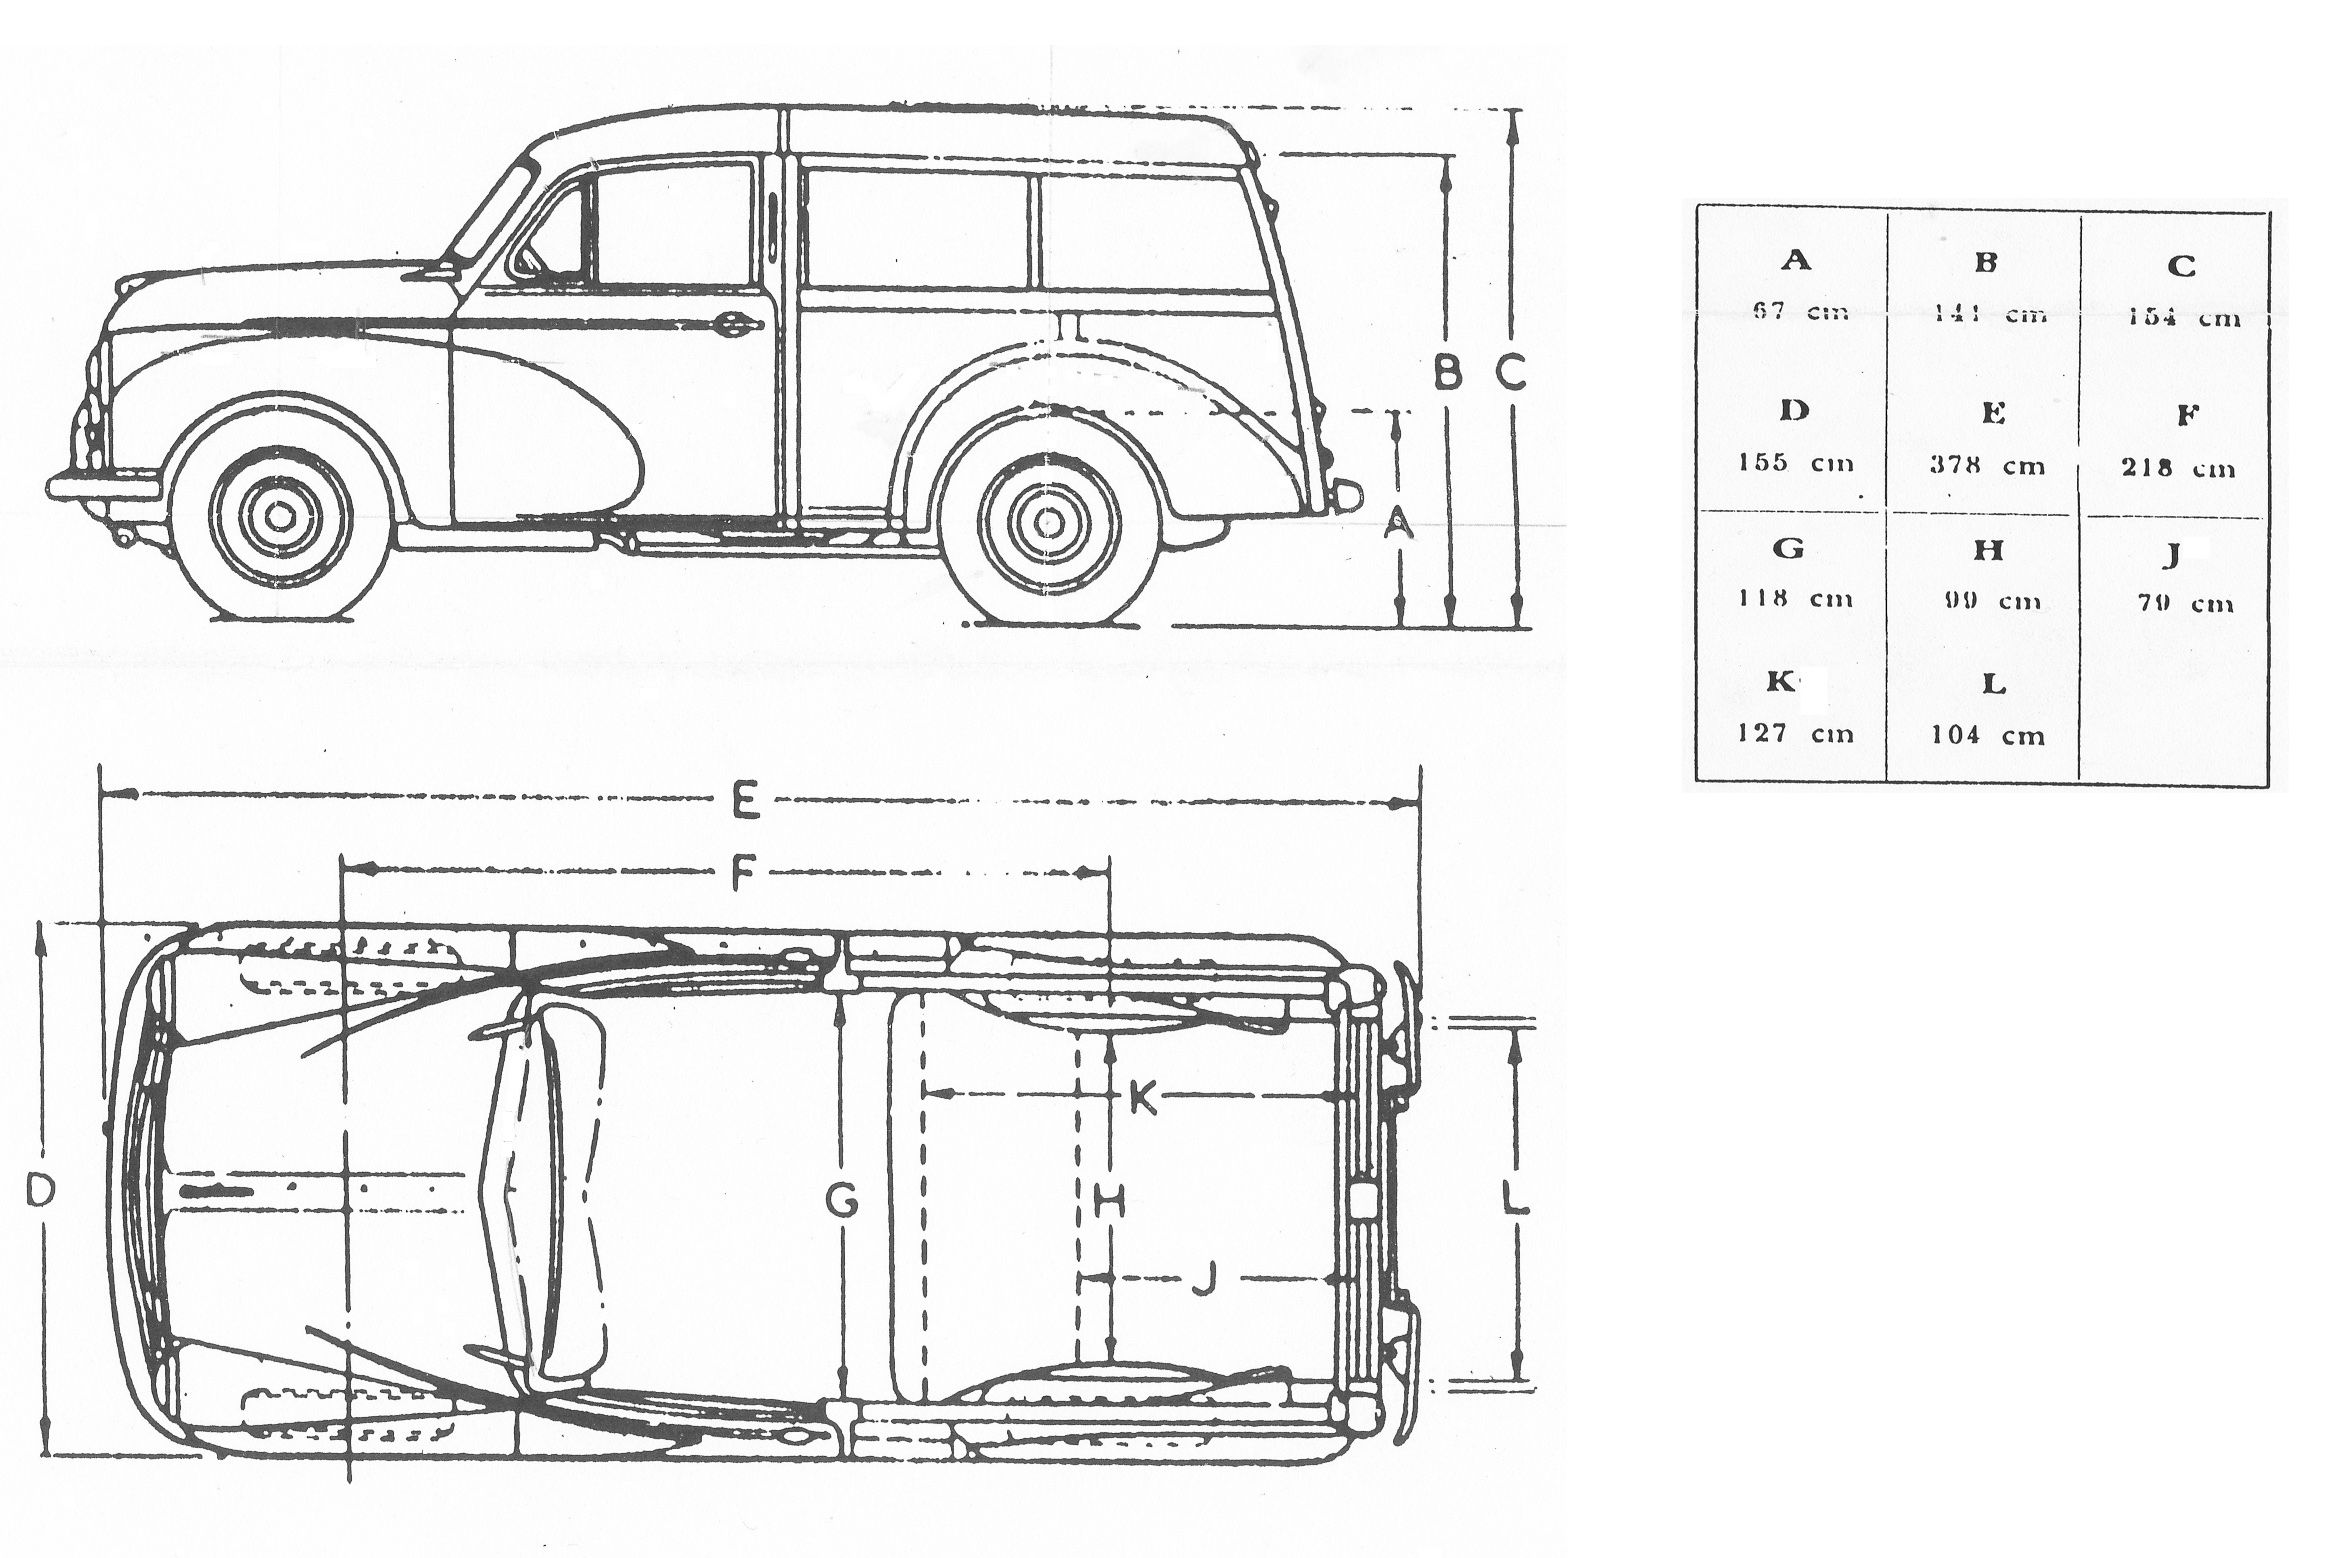 Car width clipart svg transparent Morris Traveller dimensions | Transportation Silhouettes, Vectors ... svg transparent